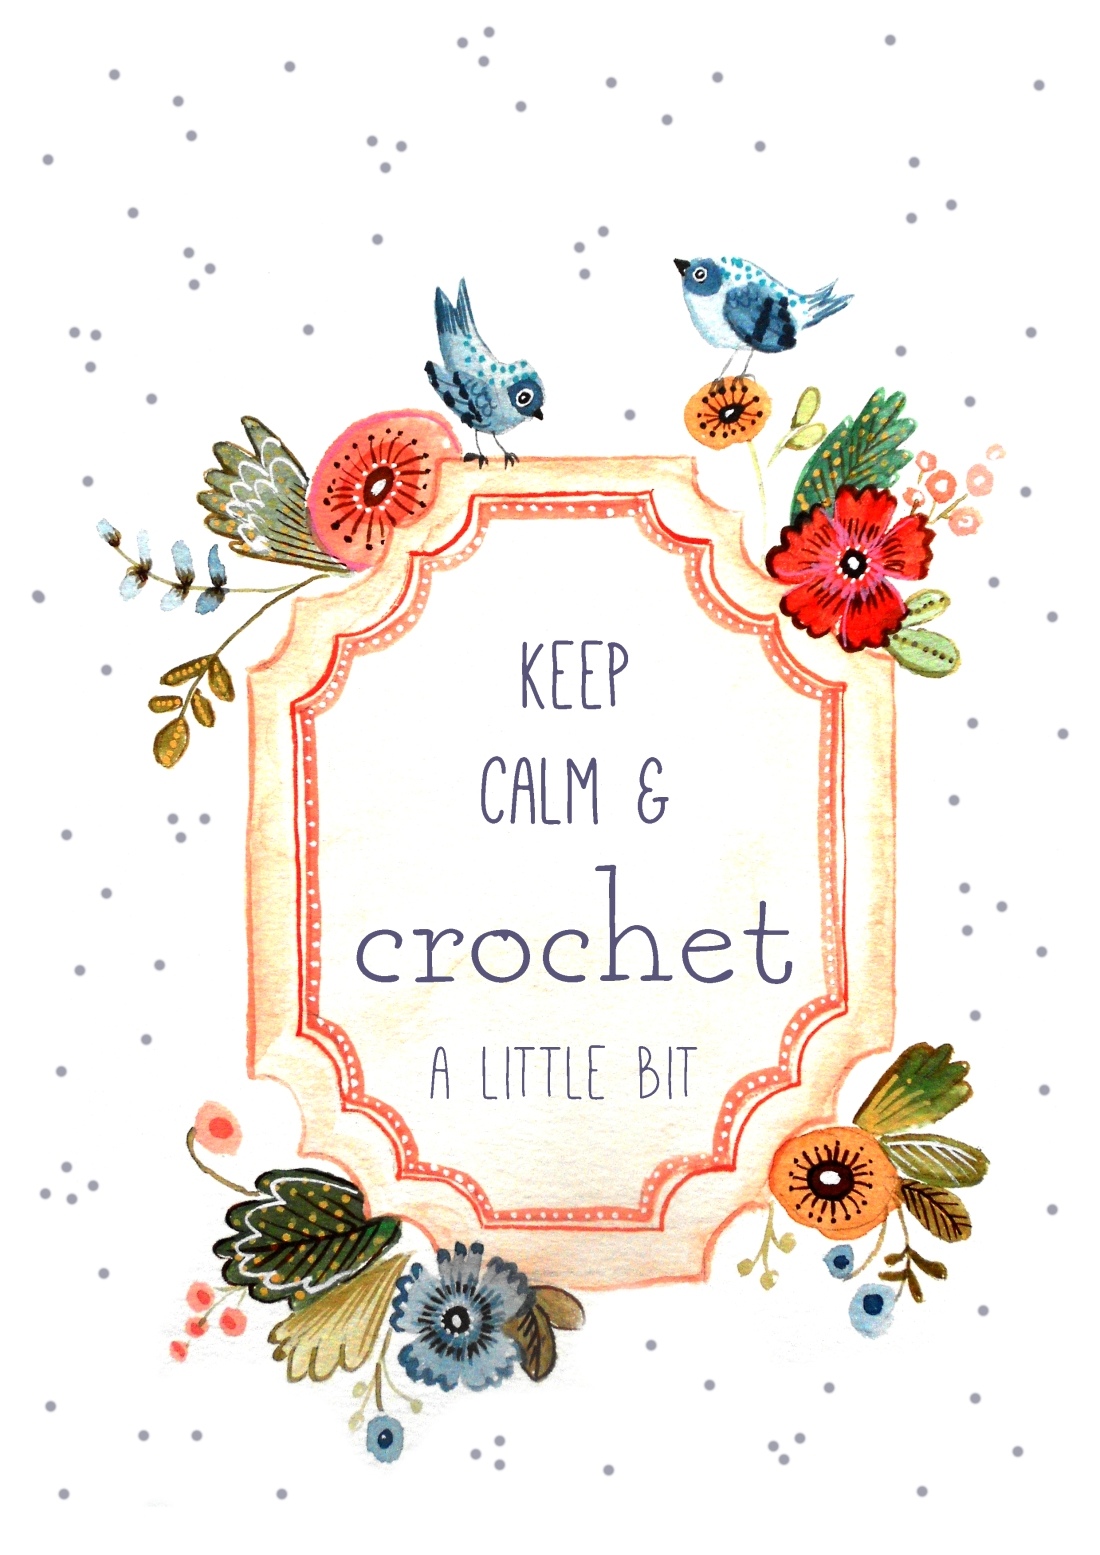 keep calm and crochet a little bit